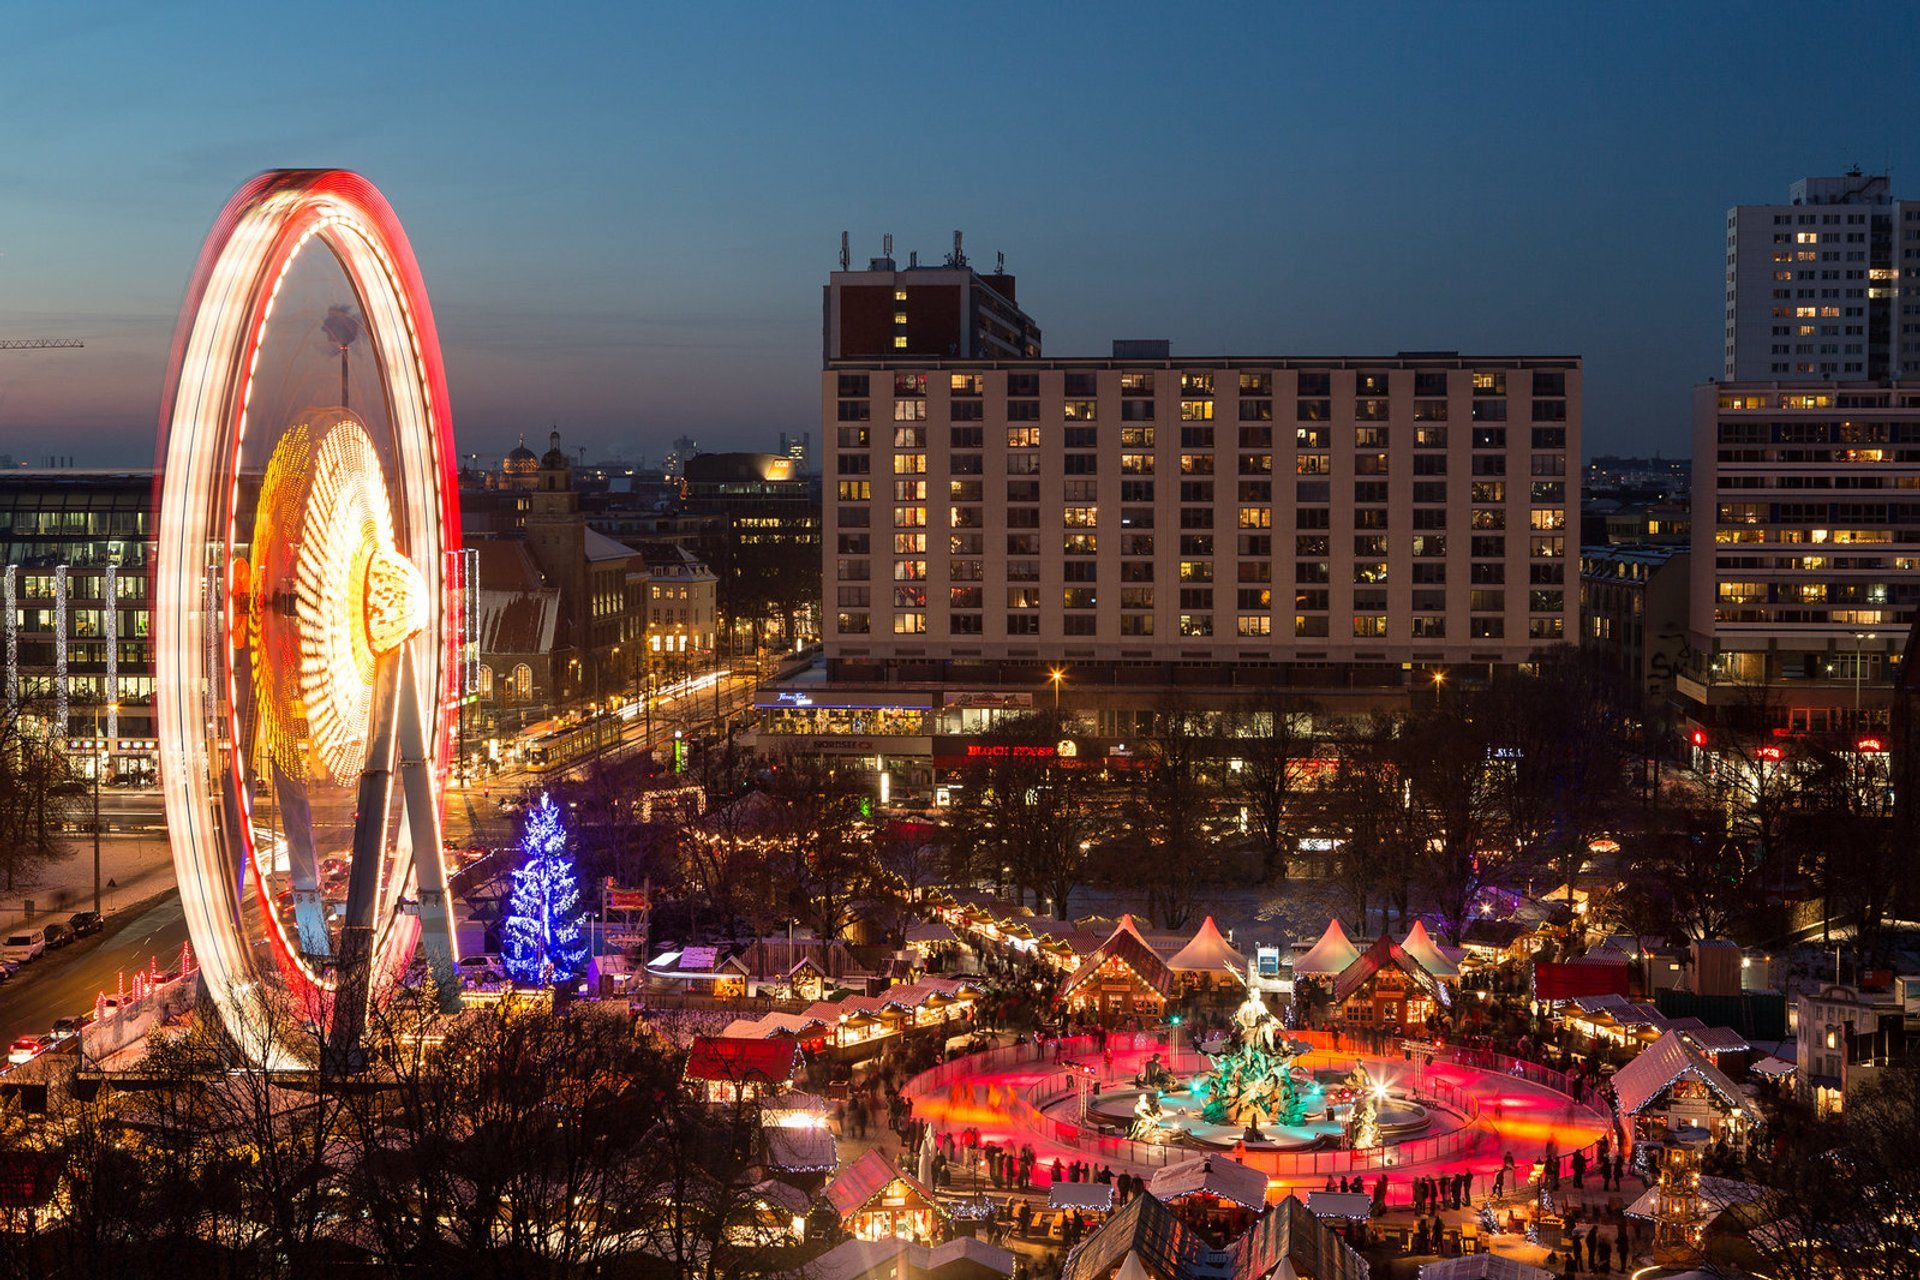 Christmas Market in front of Berlin City Hall | Weihnachtsmarkt am Roten Rathaus 2020